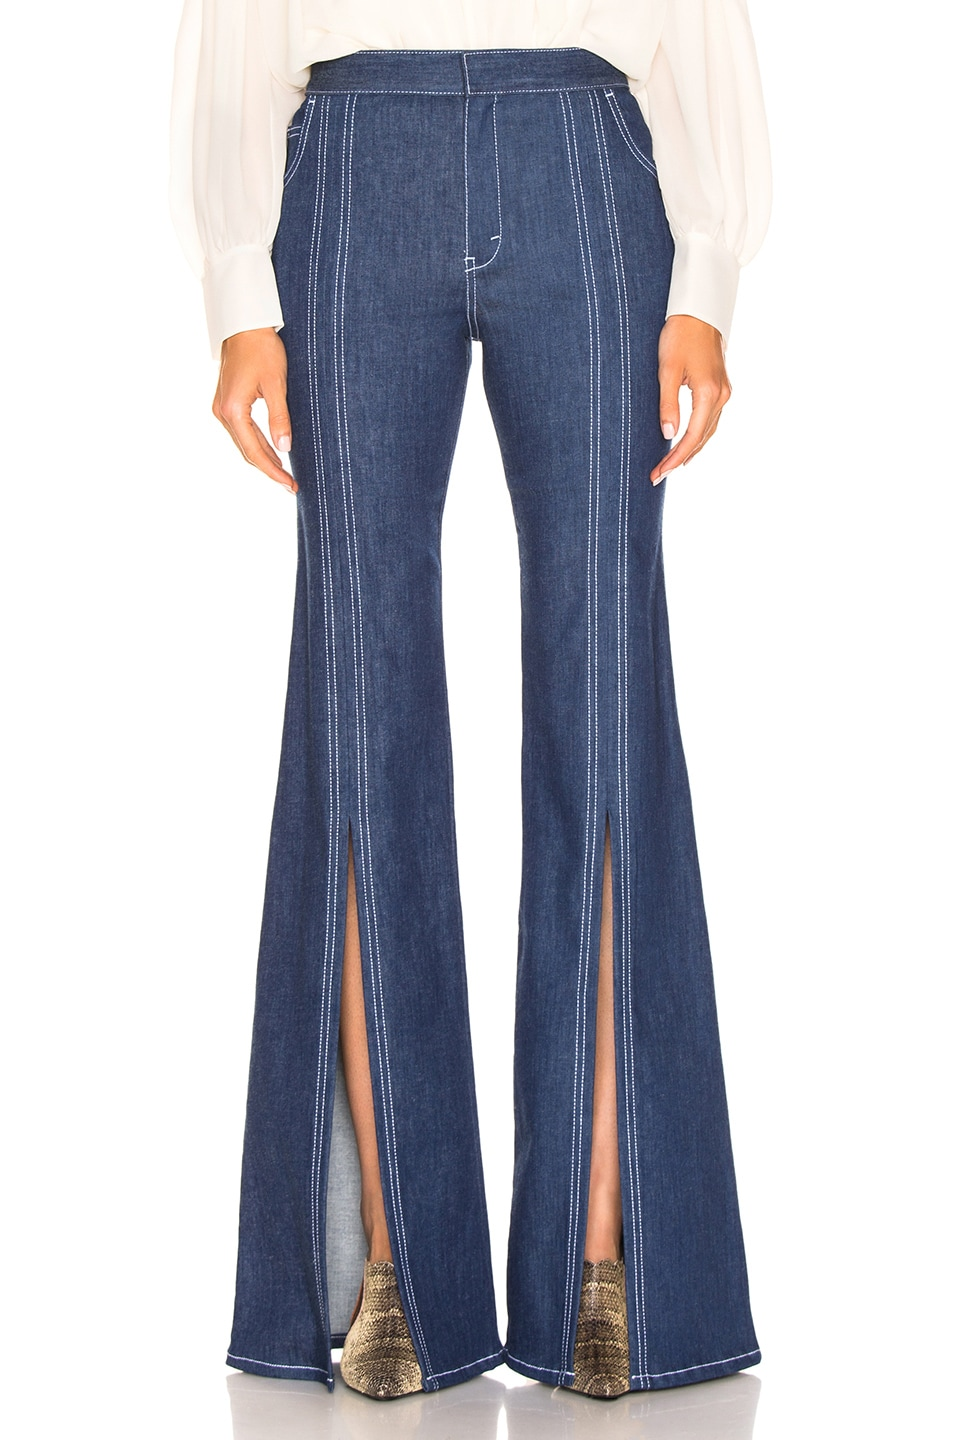 Image 1 of Chloe Flare Jean in Denim Blue